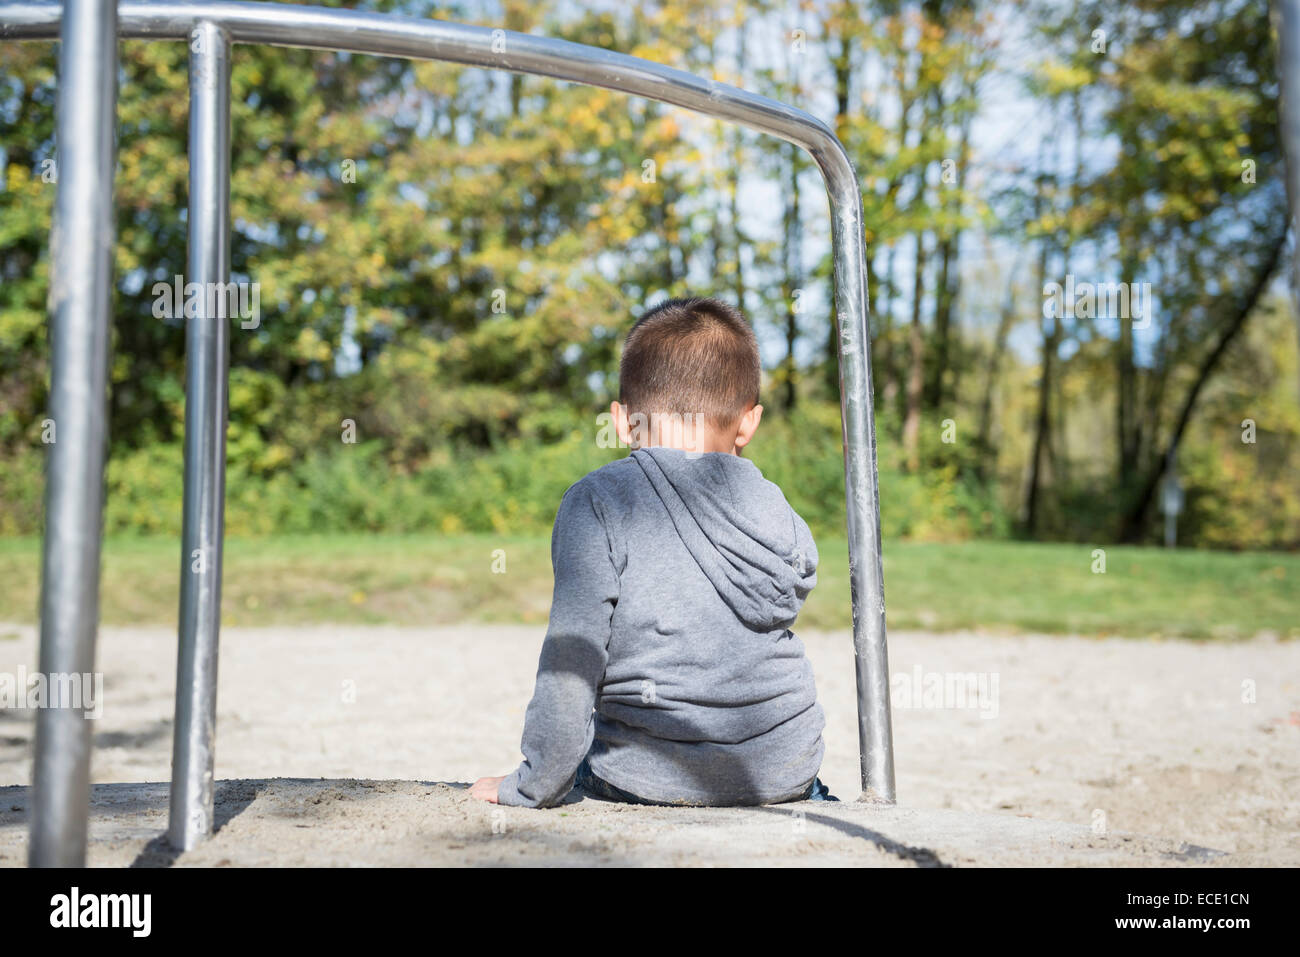 Small lonely boy sitting alone in playground - Stock Image